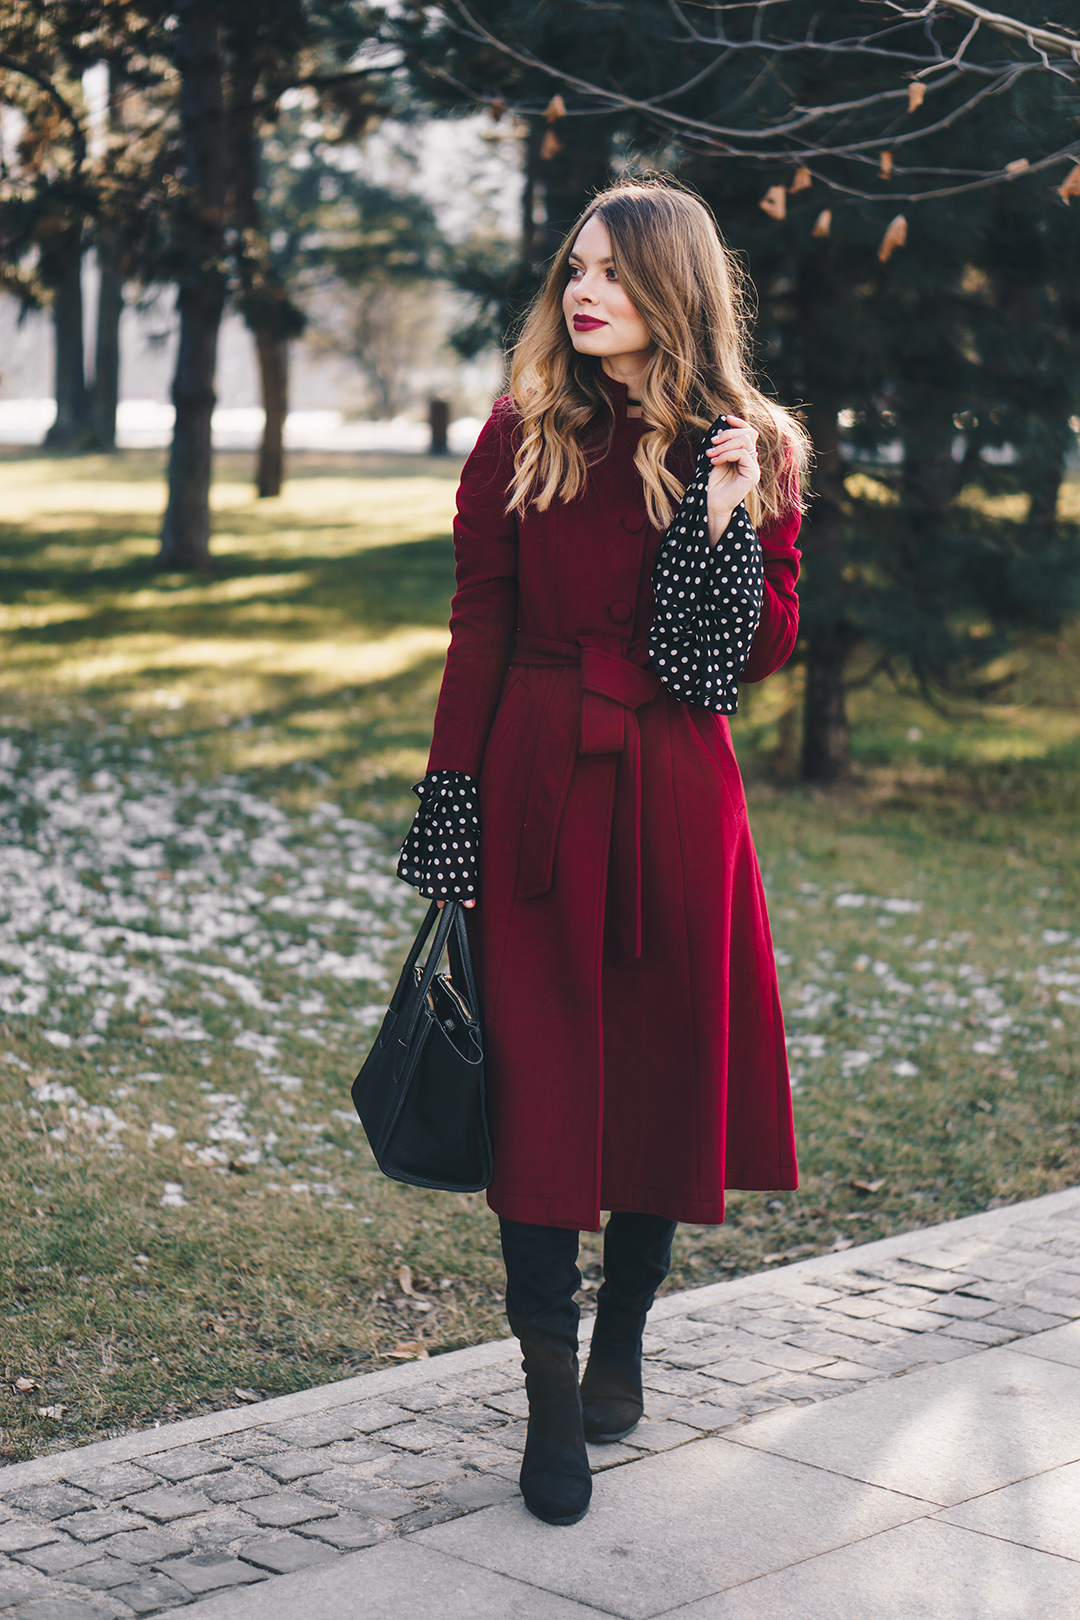 red-wool-coat-polka-dots-bell-sleeves-blouse-winter-outfit-3